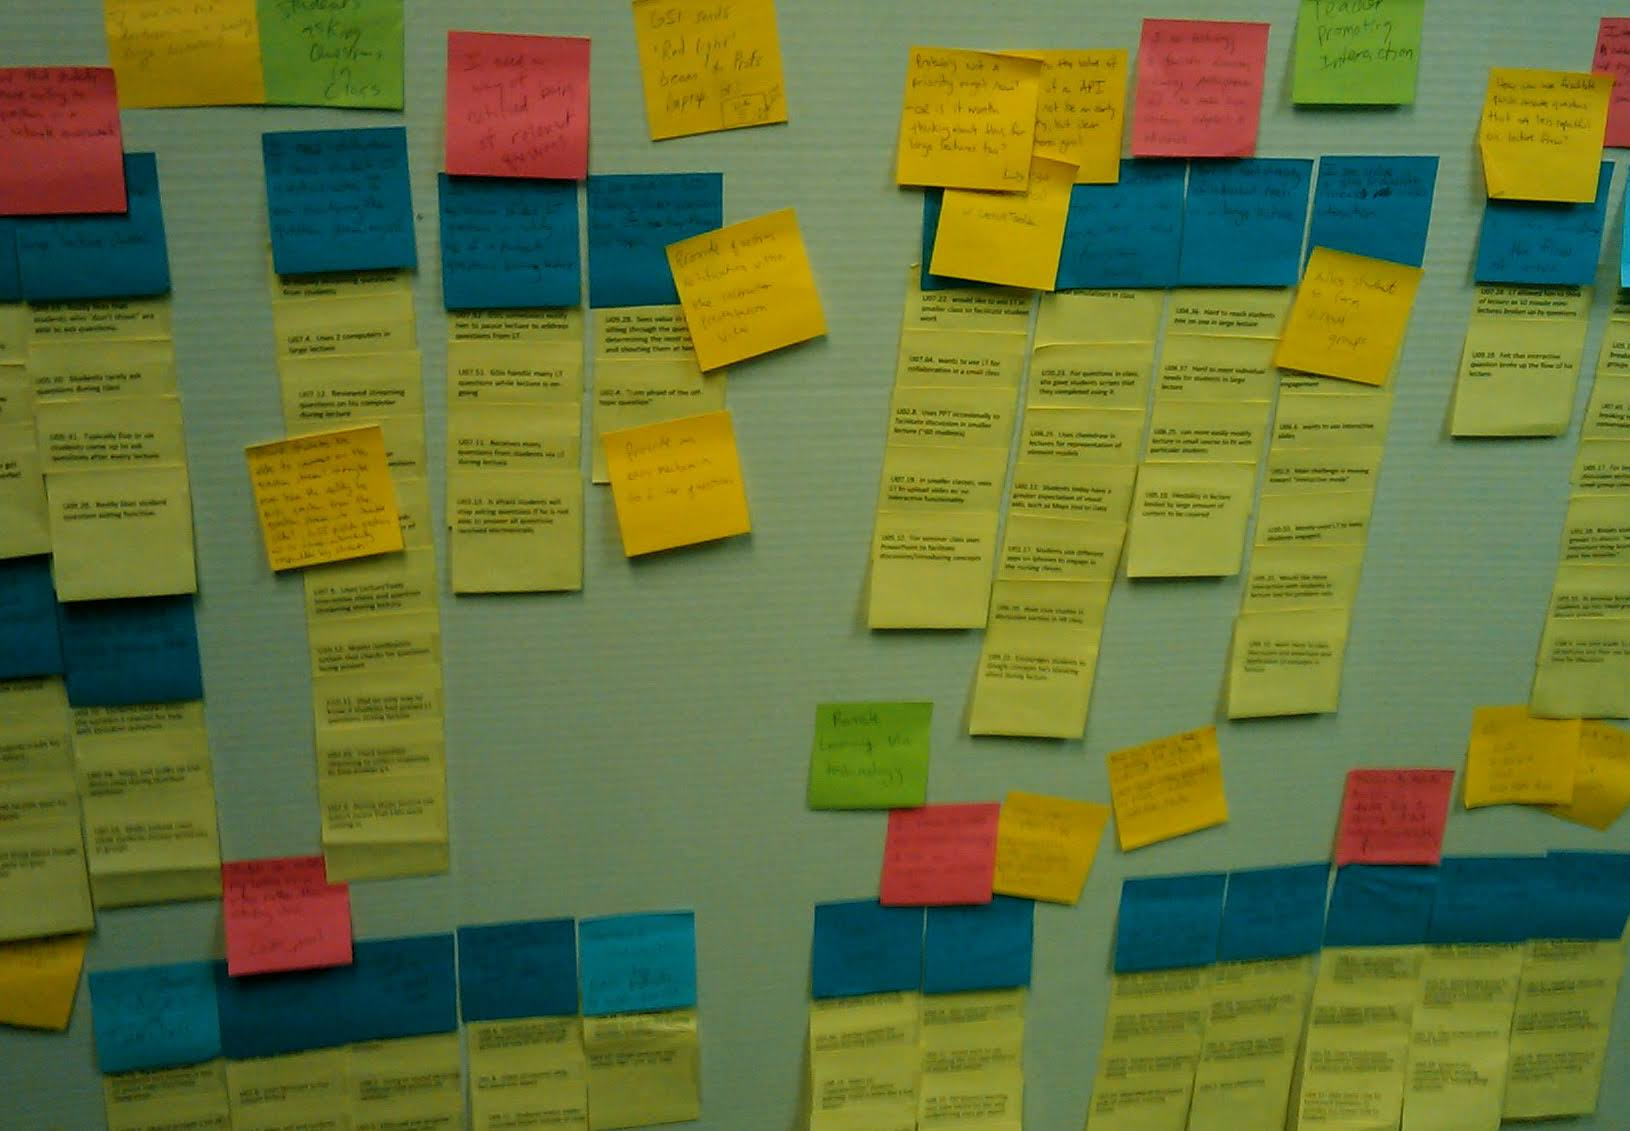 Affinity Diagram comprised of notes that were gathered from interviewing many students and instructors at the University of Michigan.